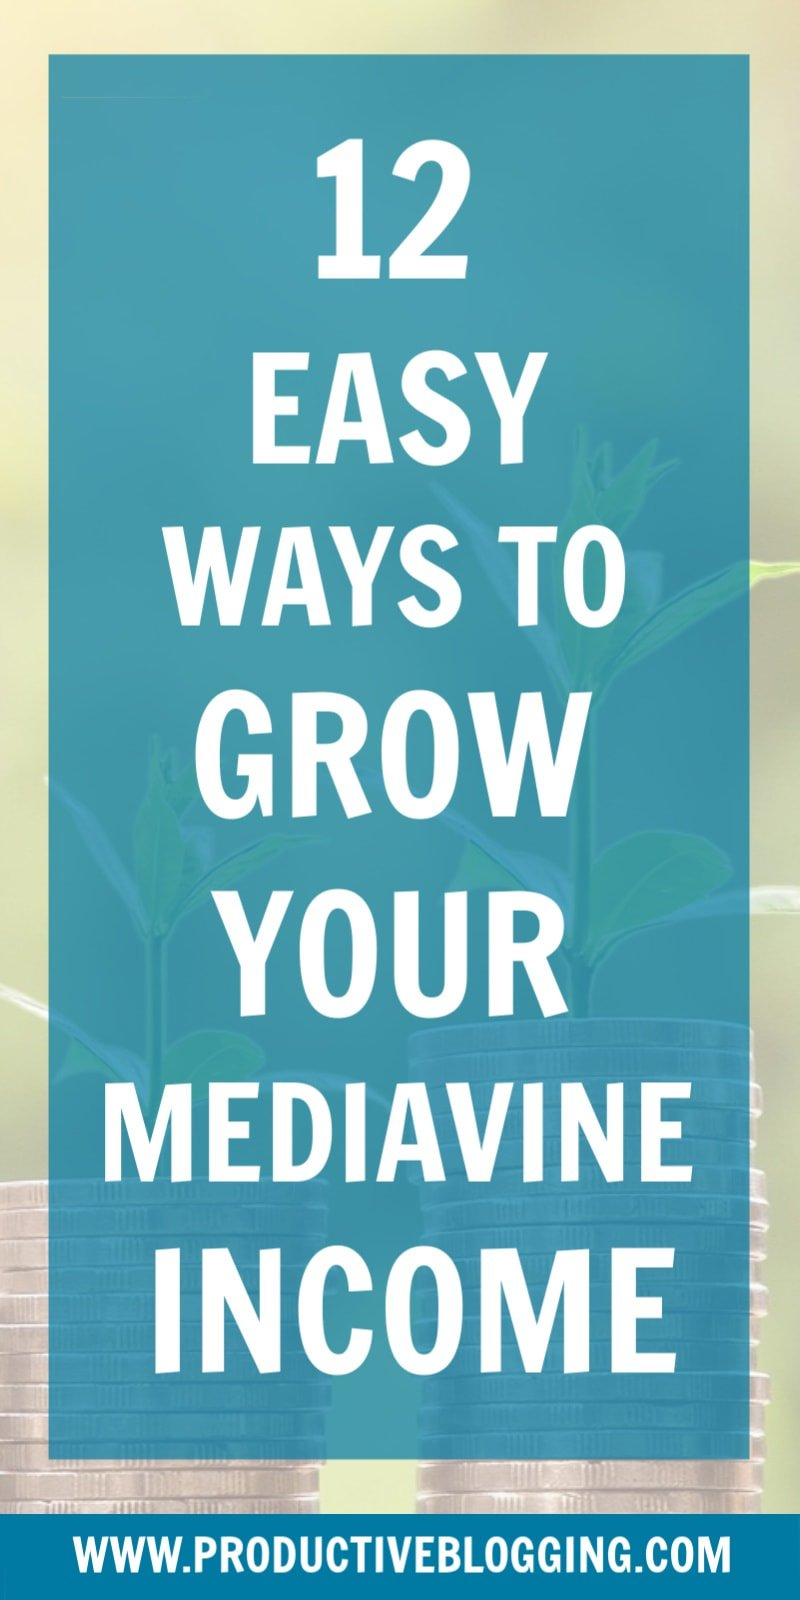 Ads are an easy way to make good money as a blogger. But are you maximising your ad revenue? Here are 12 easy ways to grow your Mediavine income… #ads #adincome adrevenue #mediavine #mediavineads #mediavineincome #makemoneyblogging #monetizeyourblog #passiveincome #blogtraffic #SEO #SEOtips #productiveblogging